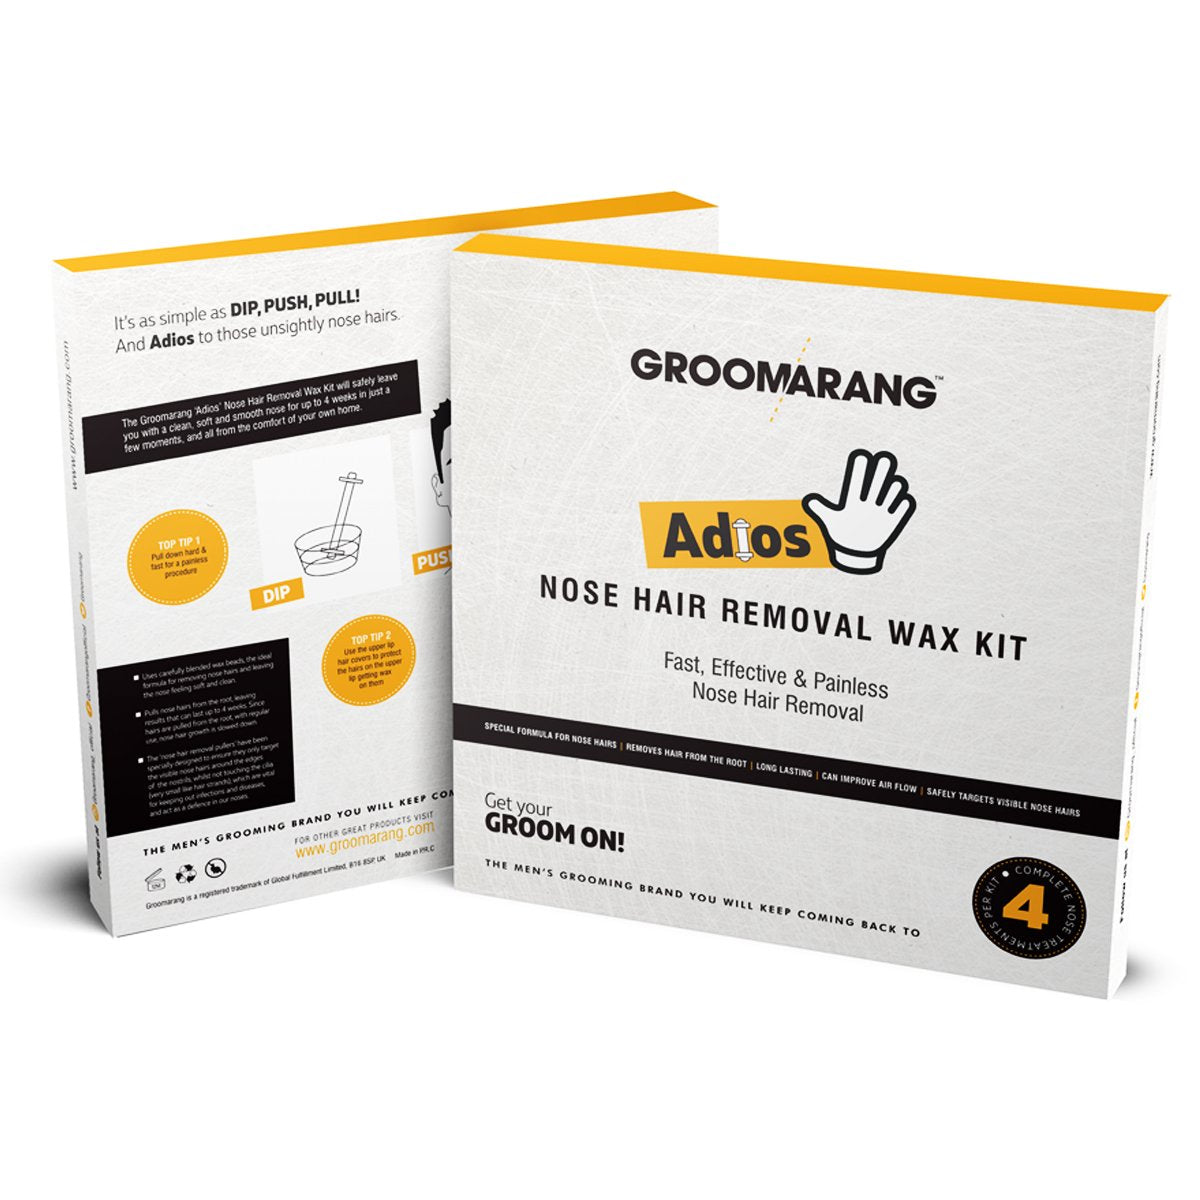 Groomarang Adios Nose Hair Removal Wax Kit, Hair Removal by My Wholesale Warehouse